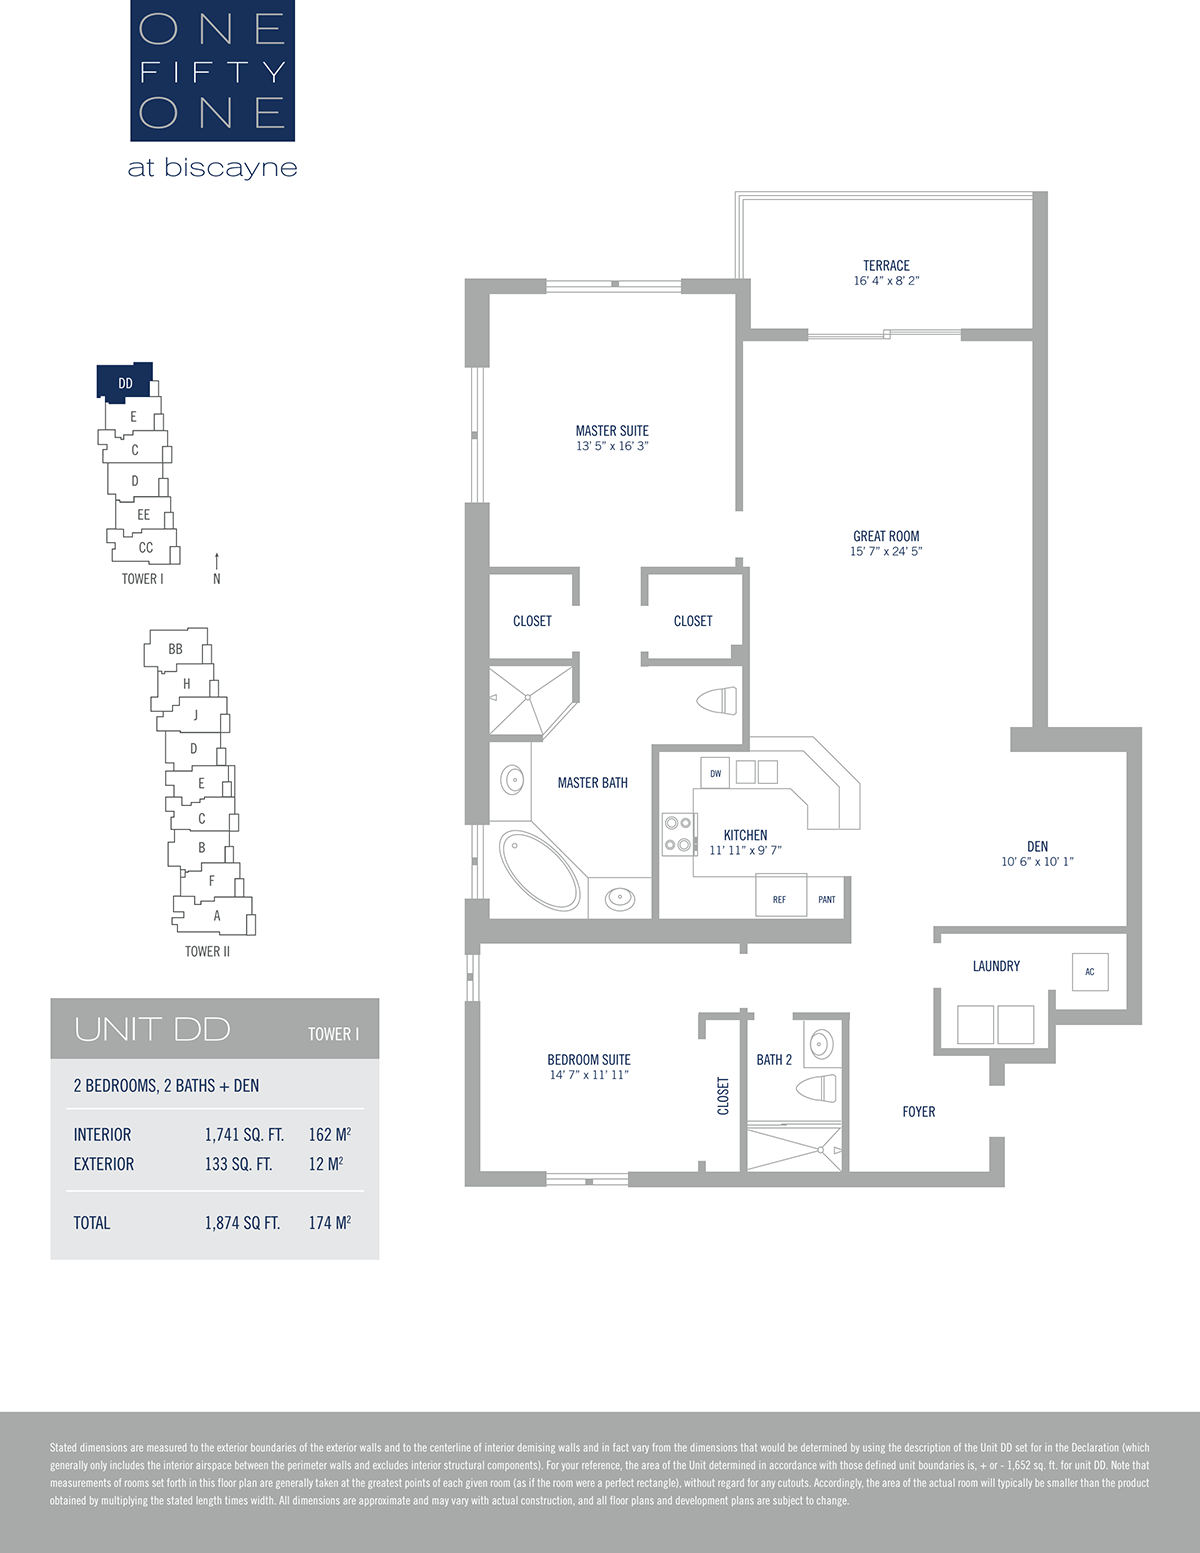 One Fifty One At Biscayne - Floorplan 15